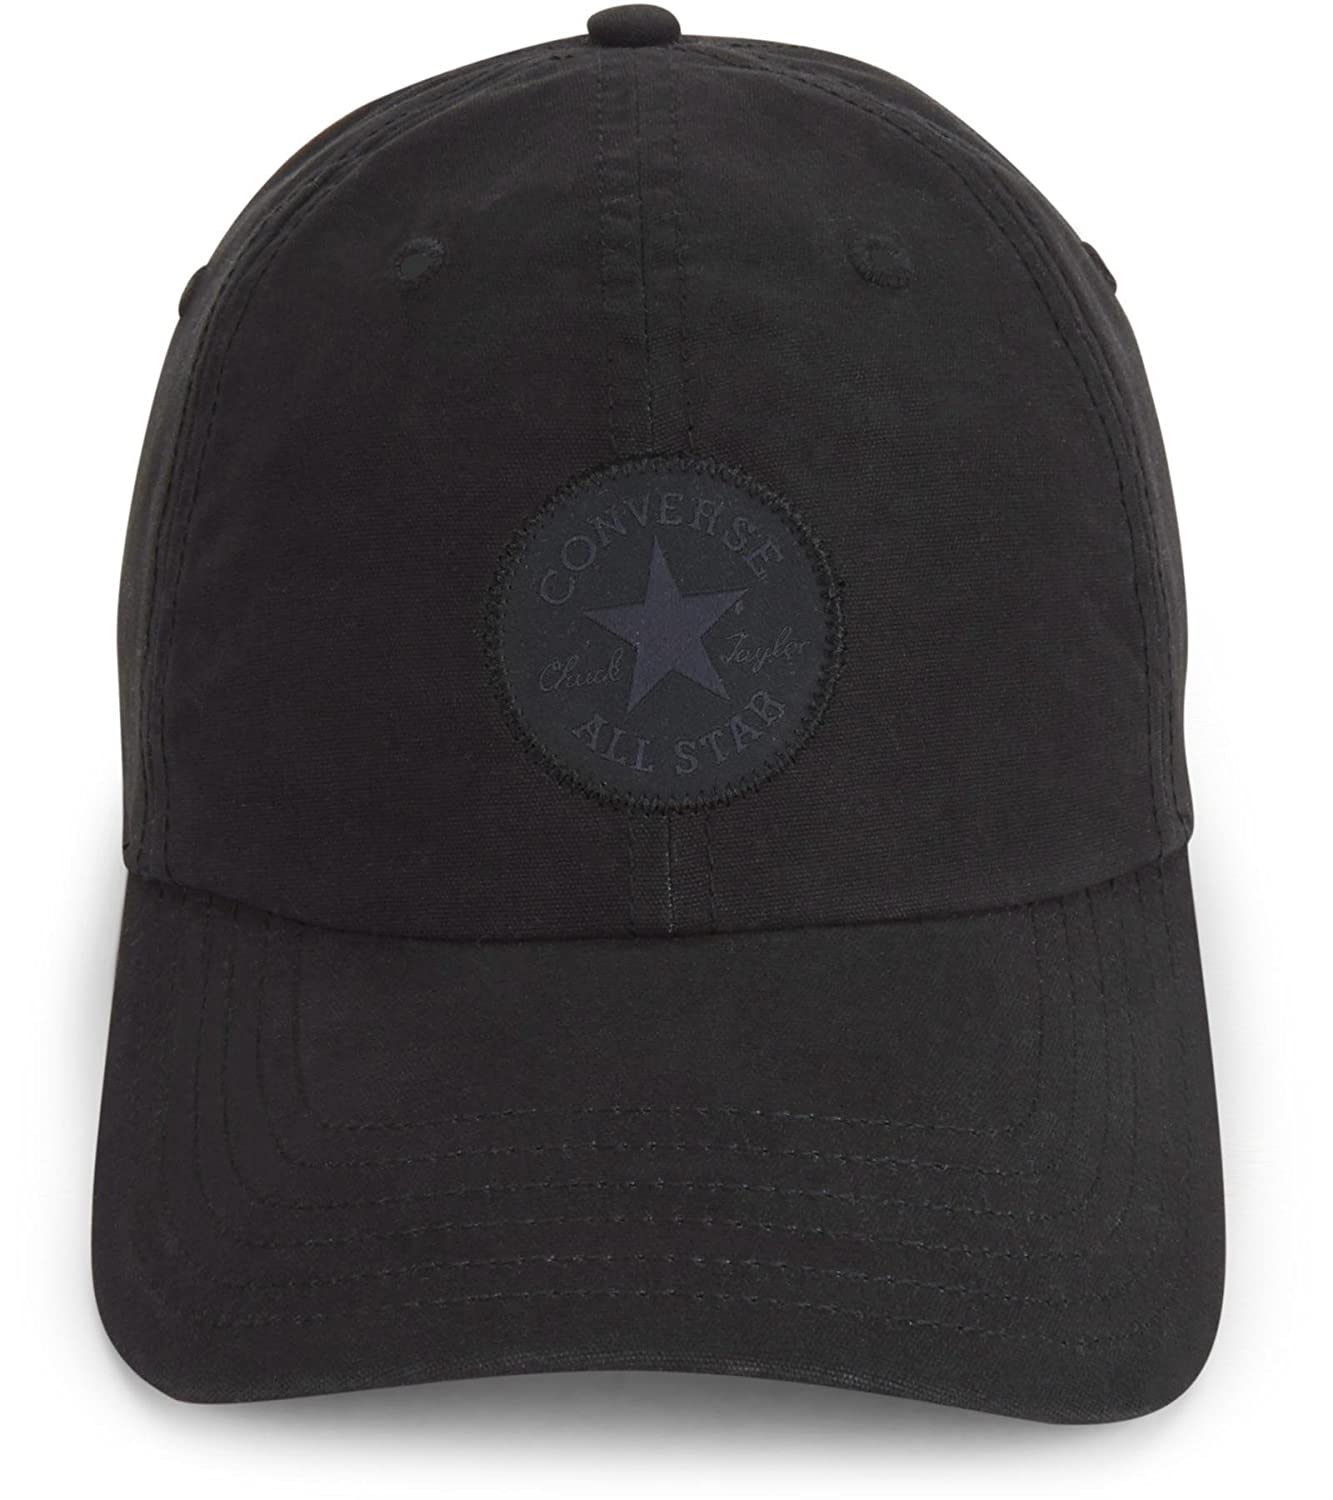 Converse Mens//Womens Monotone Adjustable Strapback Baseball Cap